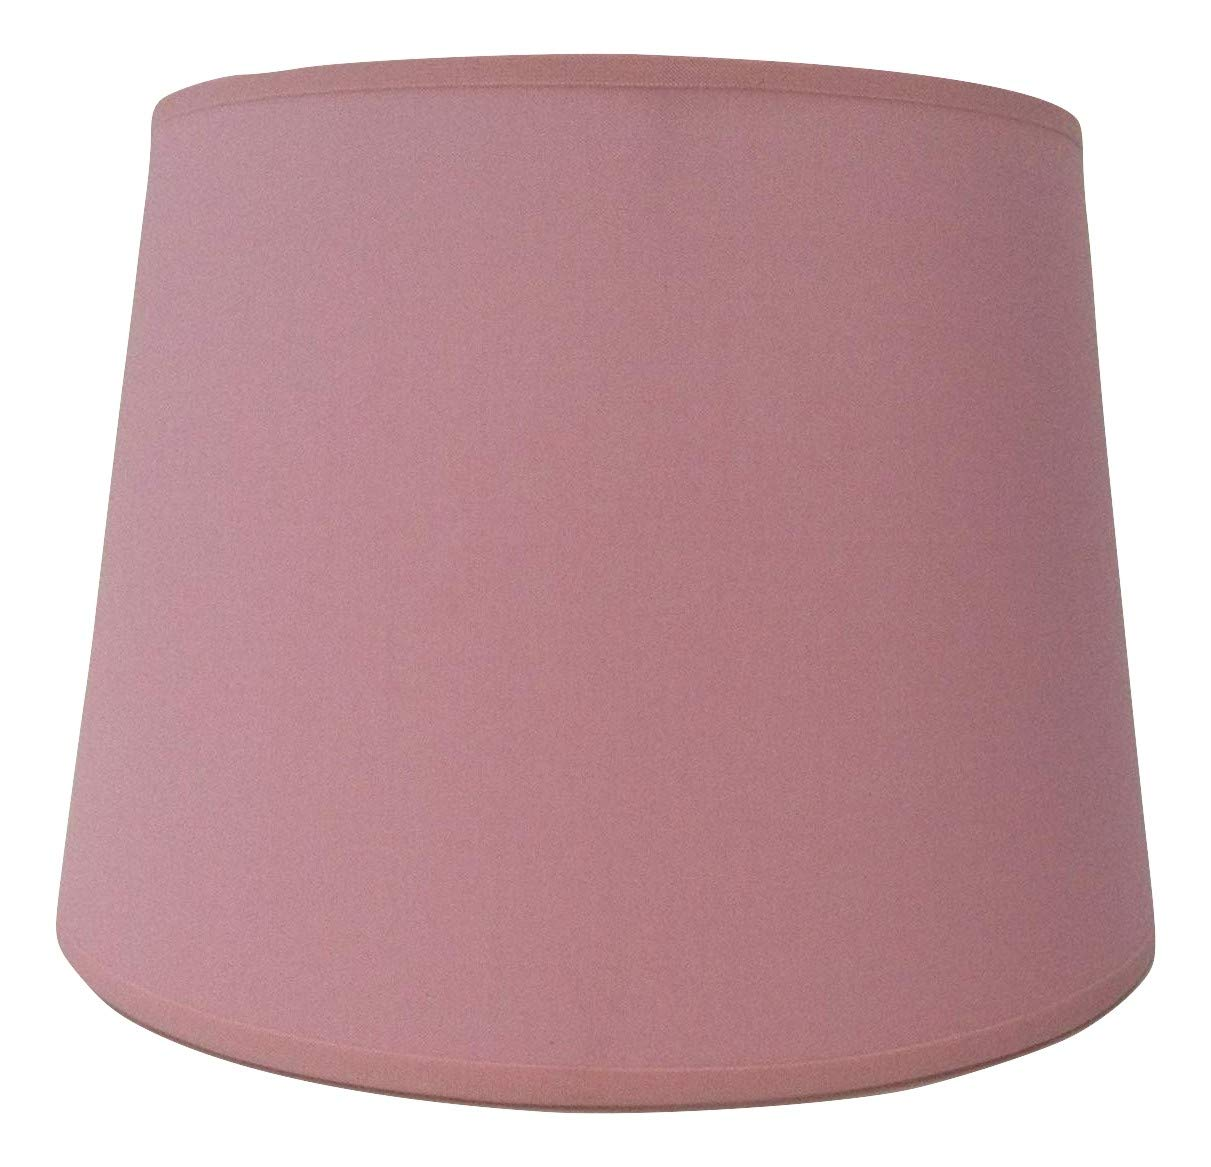 10'' Empire Pink Cotton Fabric Lampshade Light Lamp Shade Table Handmade ArG Lighting